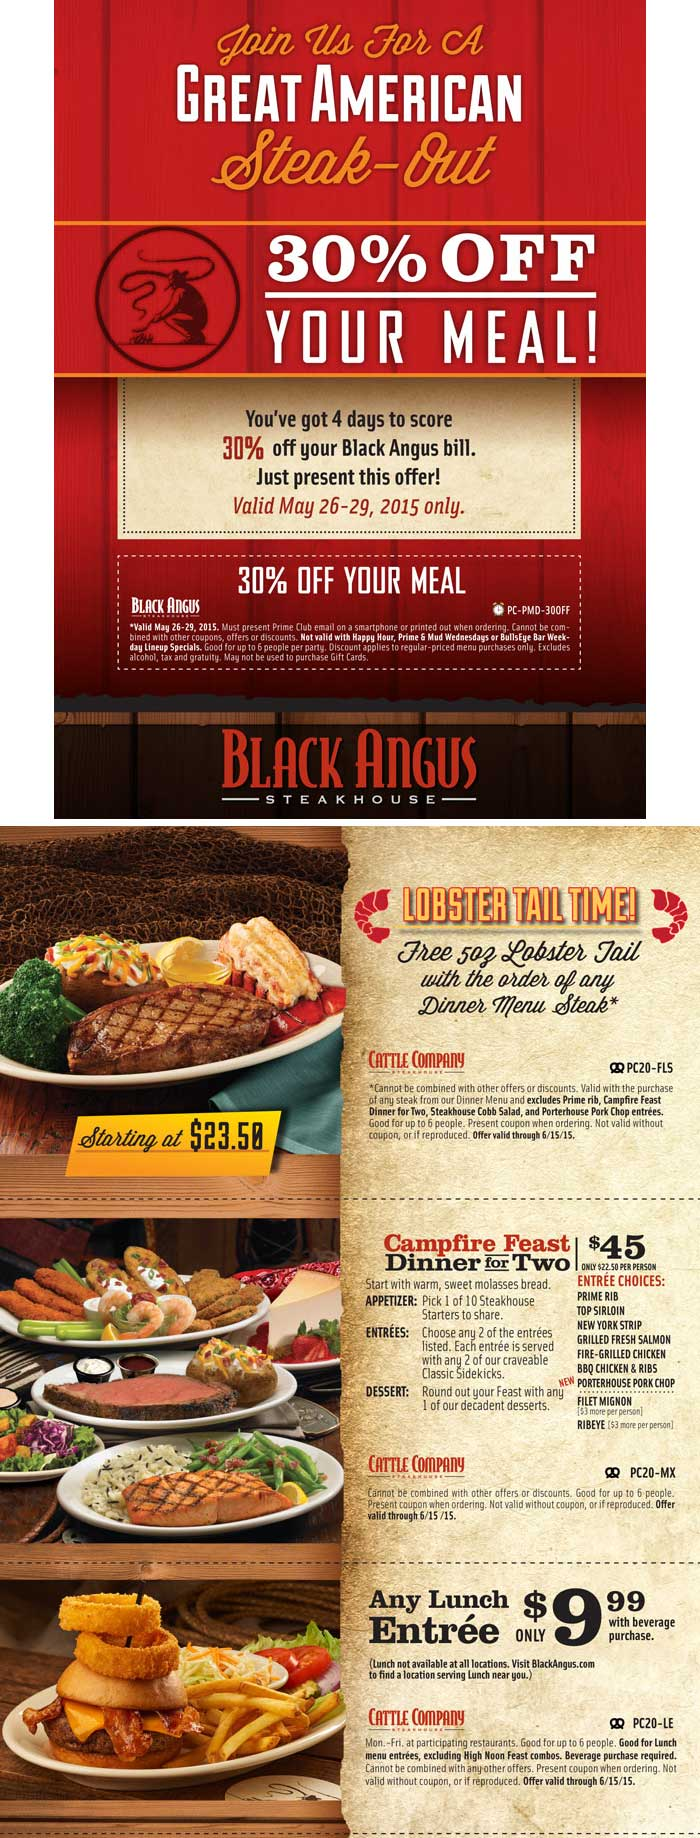 Black Angus Coupon June 2017 Free lobster with your steak, 30% off & more at Black Angus